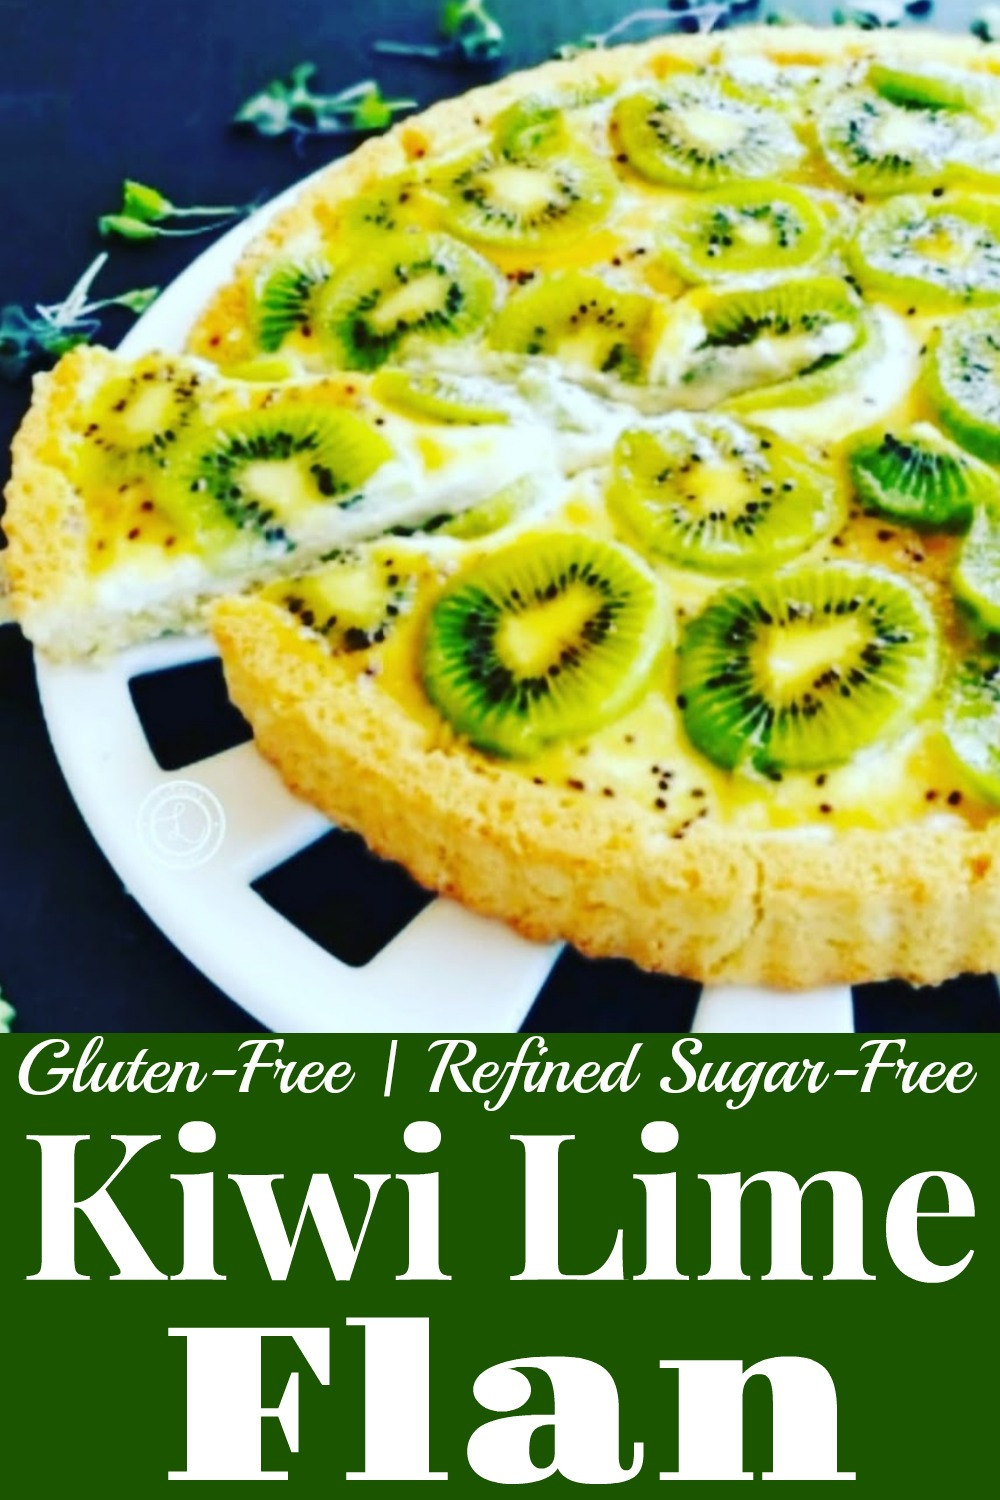 Finished Gluten-Free Kiwi Lime Flan removing a piece of flan.